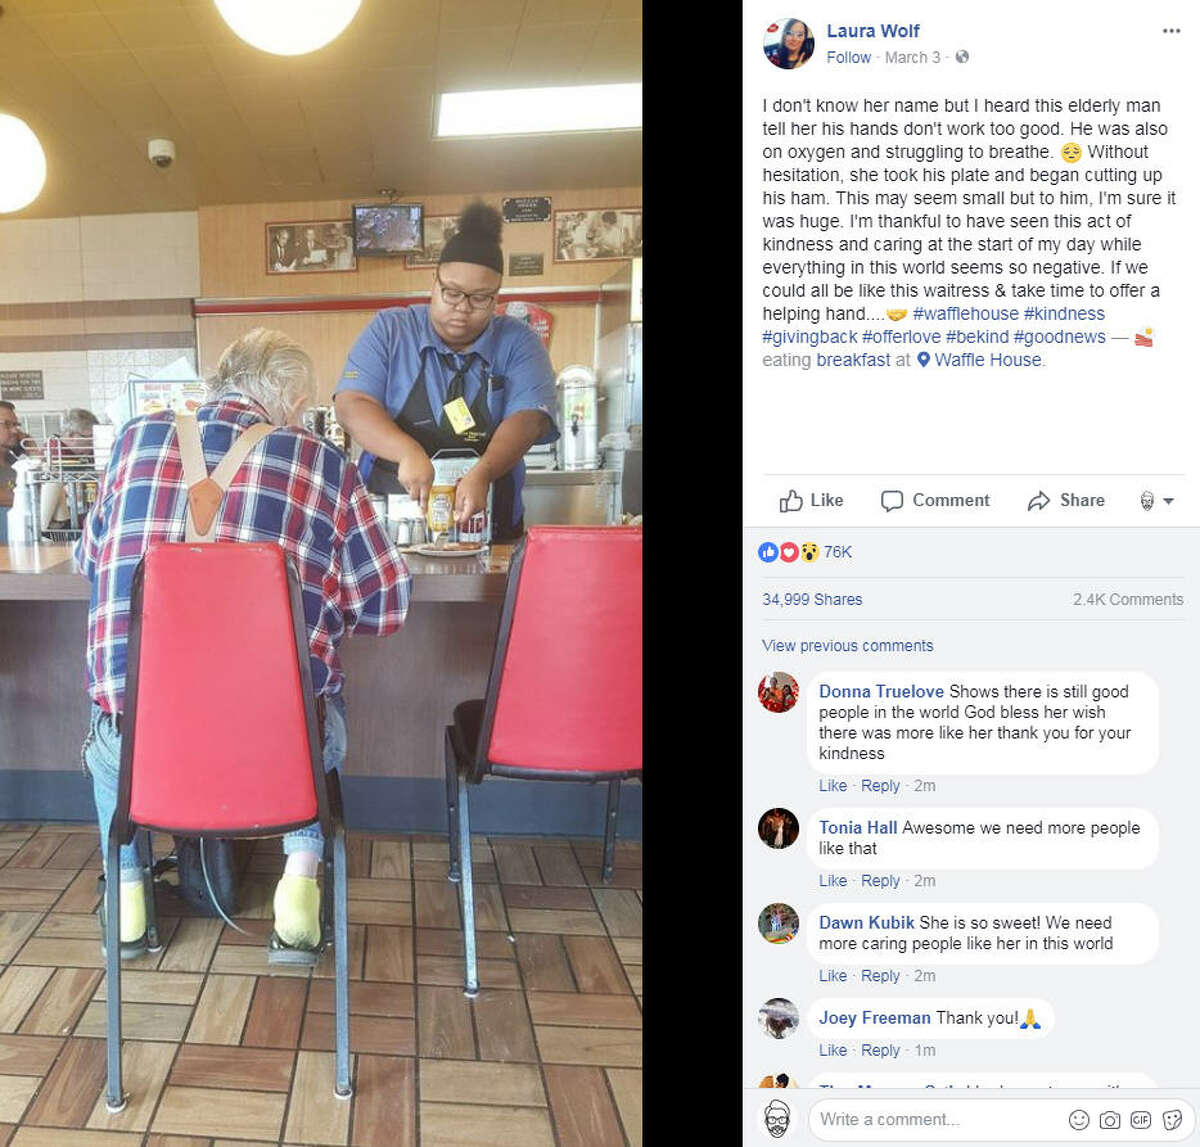 Evoni Williams, 18, touched tens of thousands of people on Facebook and Reddit after a photo of her helping a customer cut his food went viral. Swipe through to see some photos of celebrities engaging in some random acts of kindness.